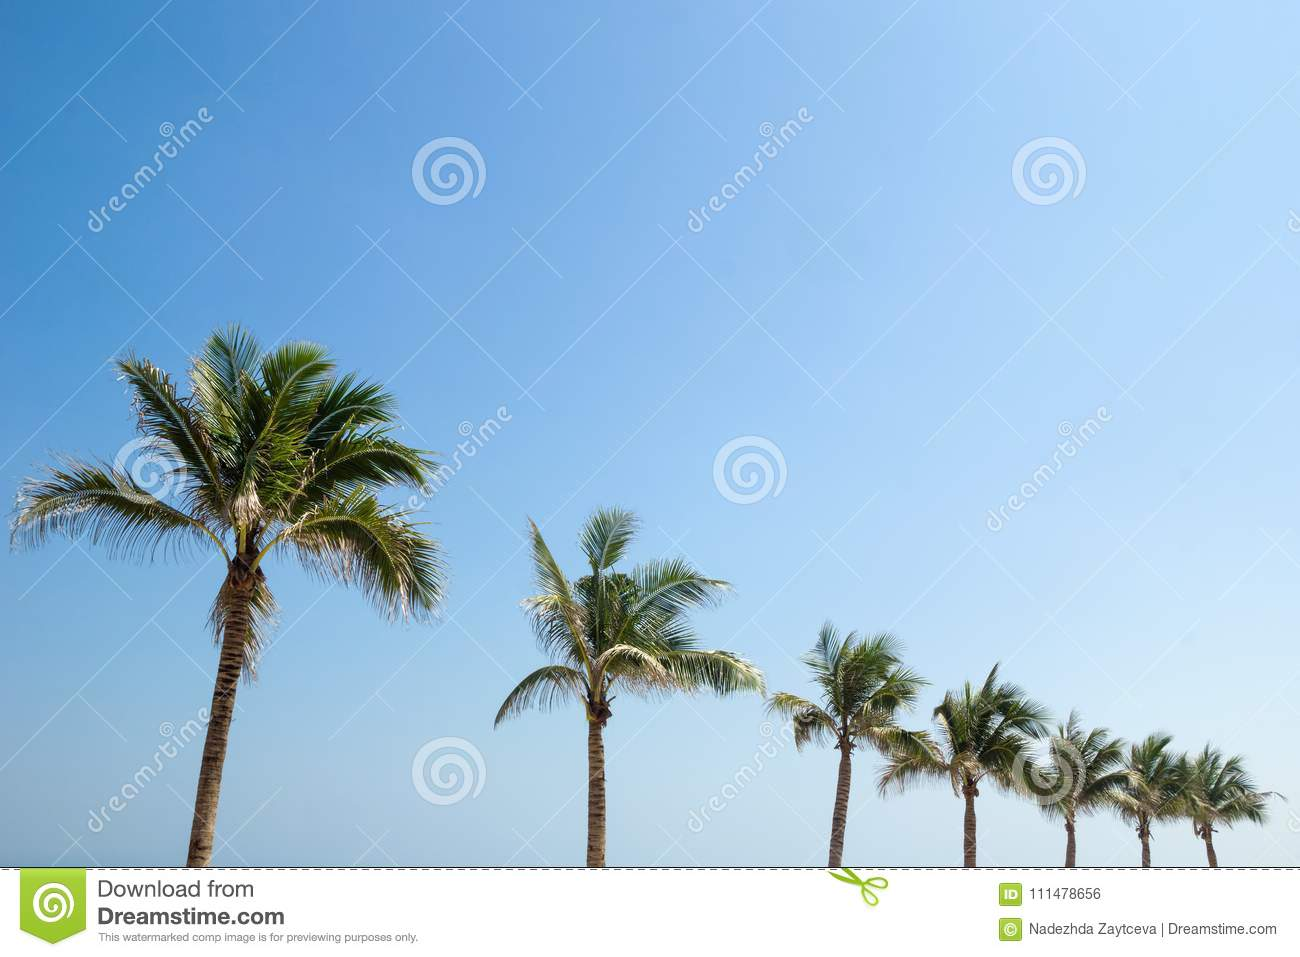 Palm trees on a background of a blue sky.